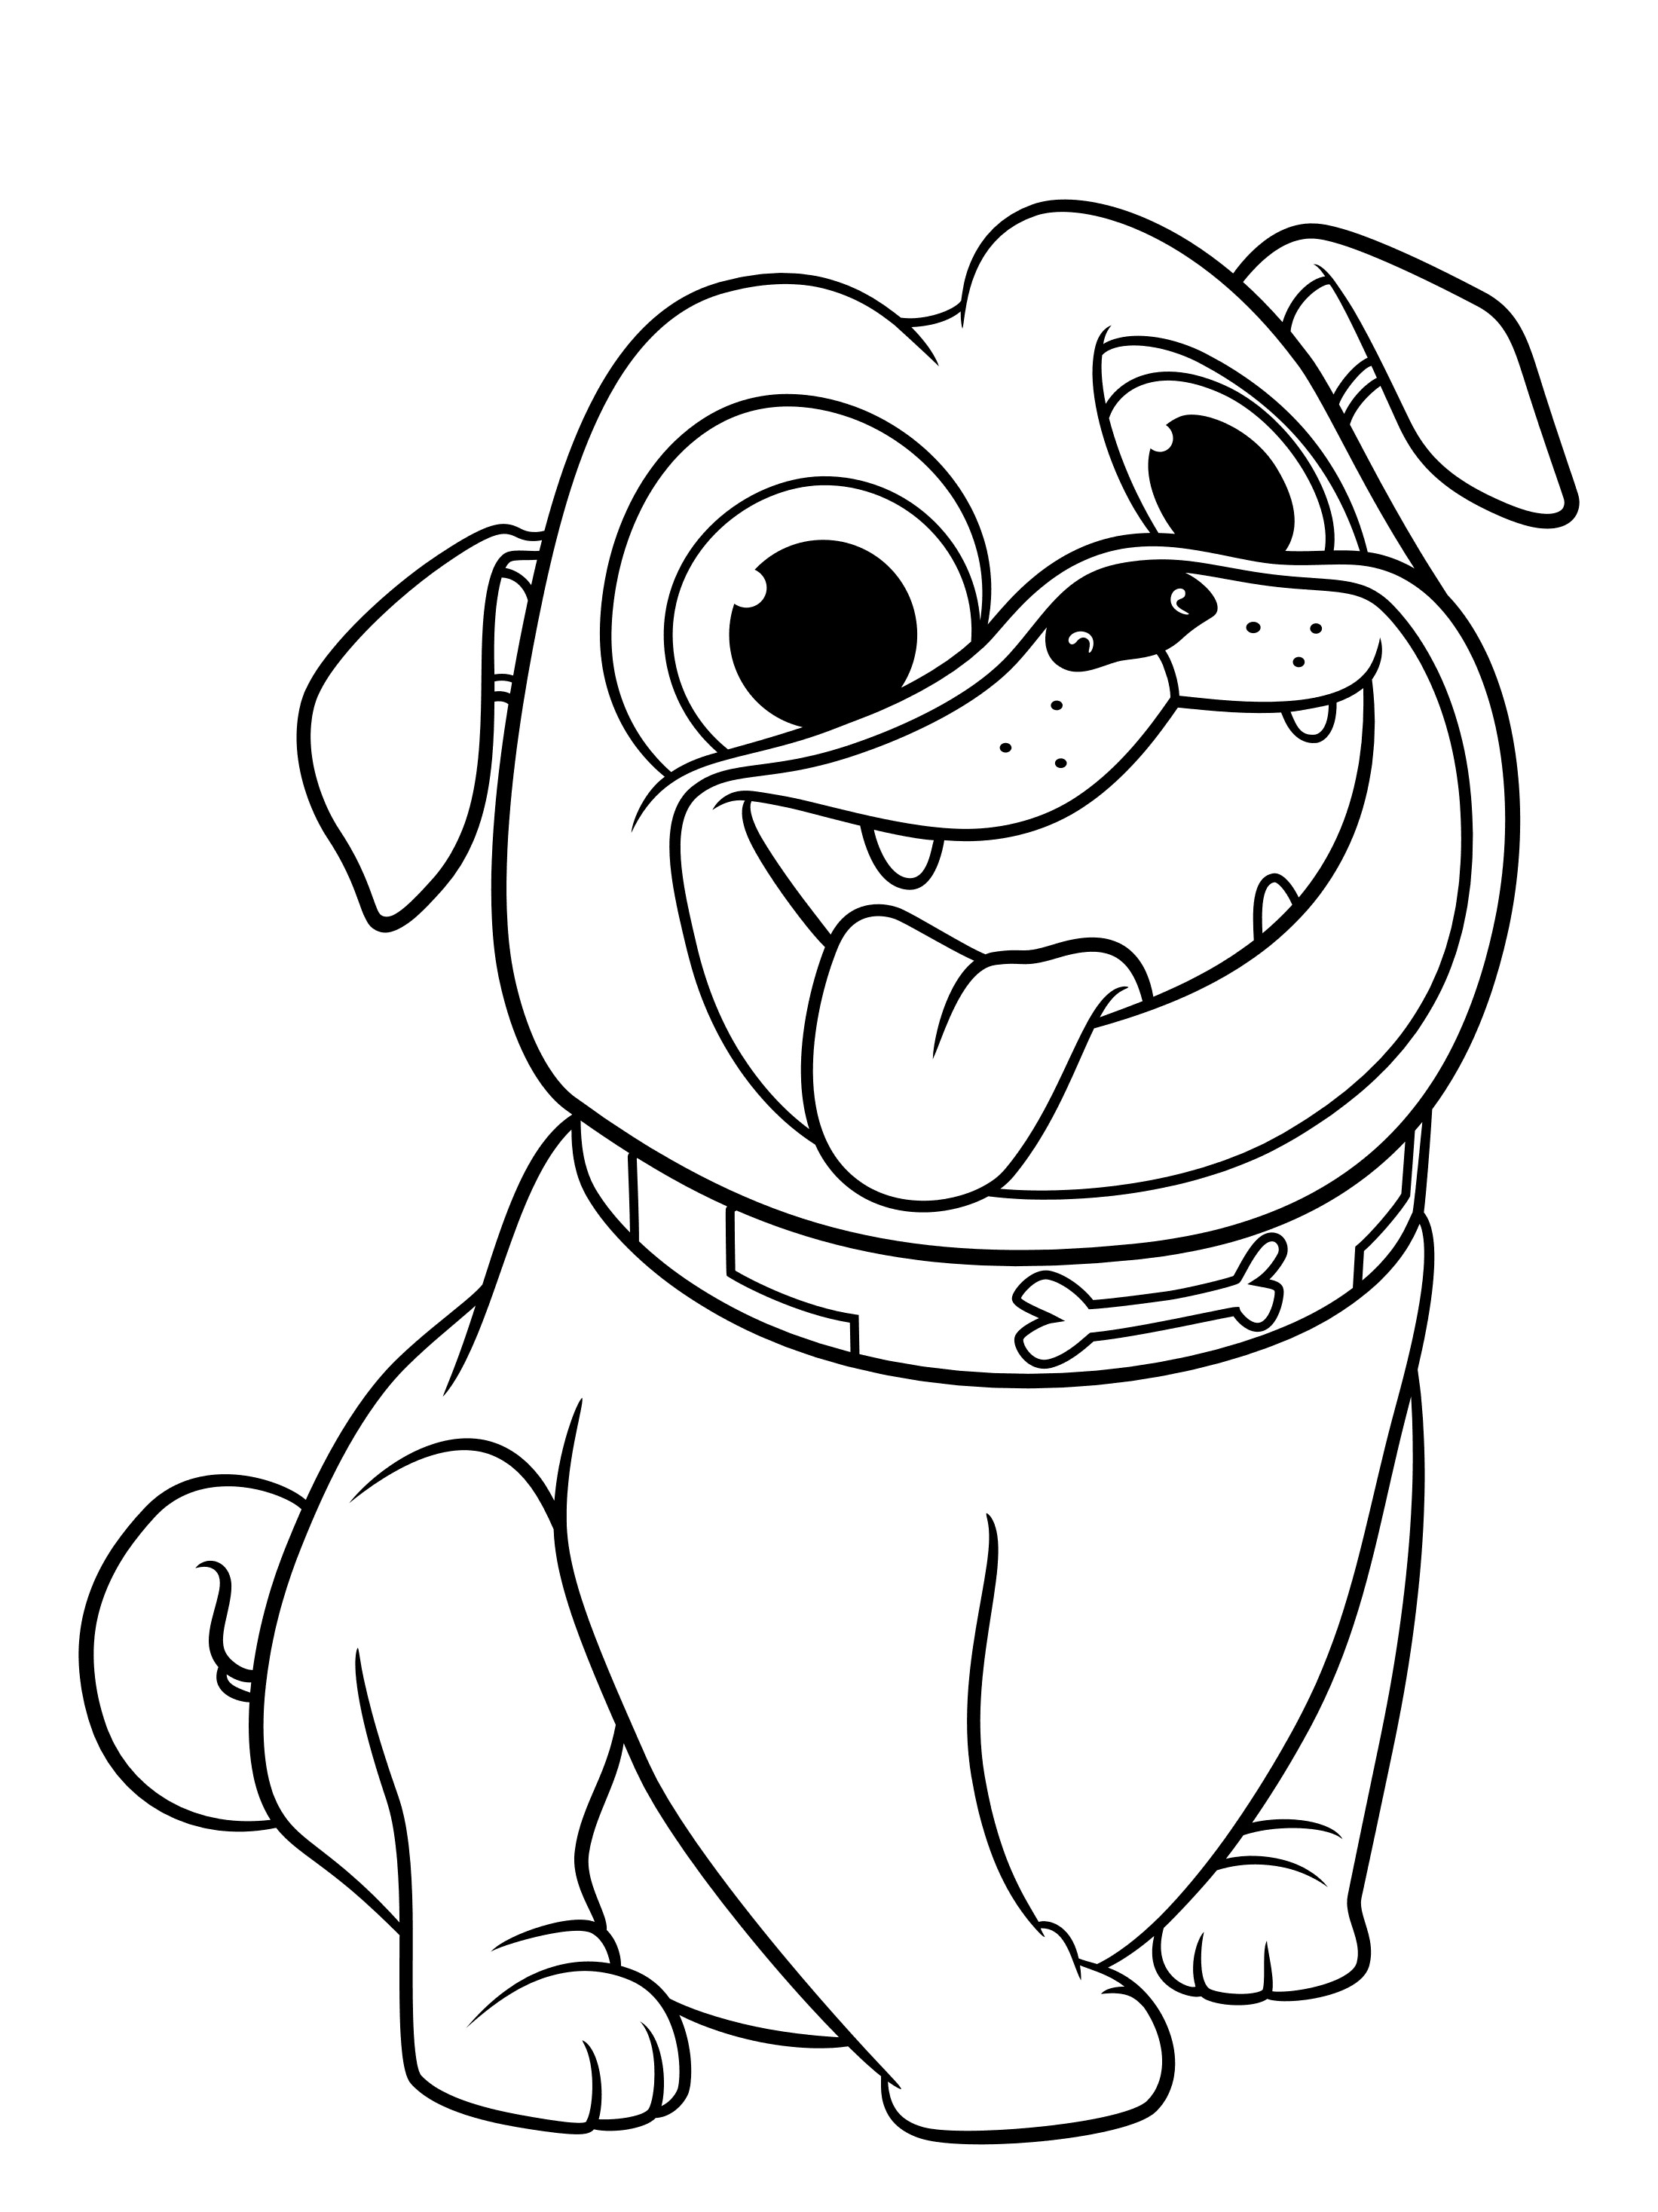 dog coloring pictures to print cute dog coloring pages to download and print for free dog pictures print coloring to